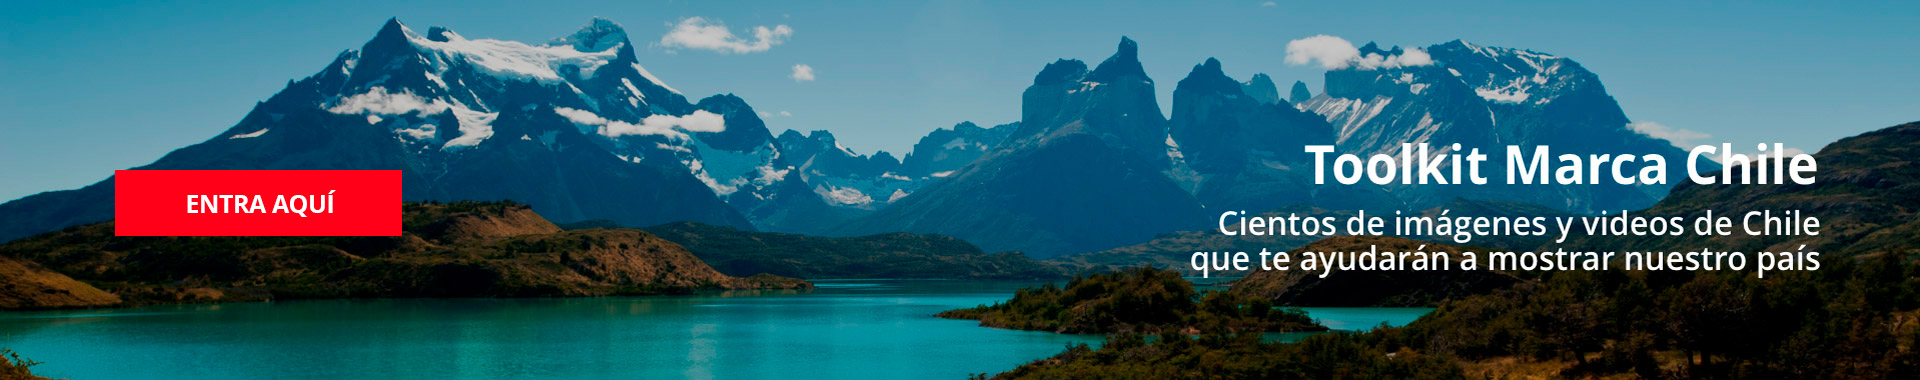 banner-chile-toolkit-videos-imagenes.jpg